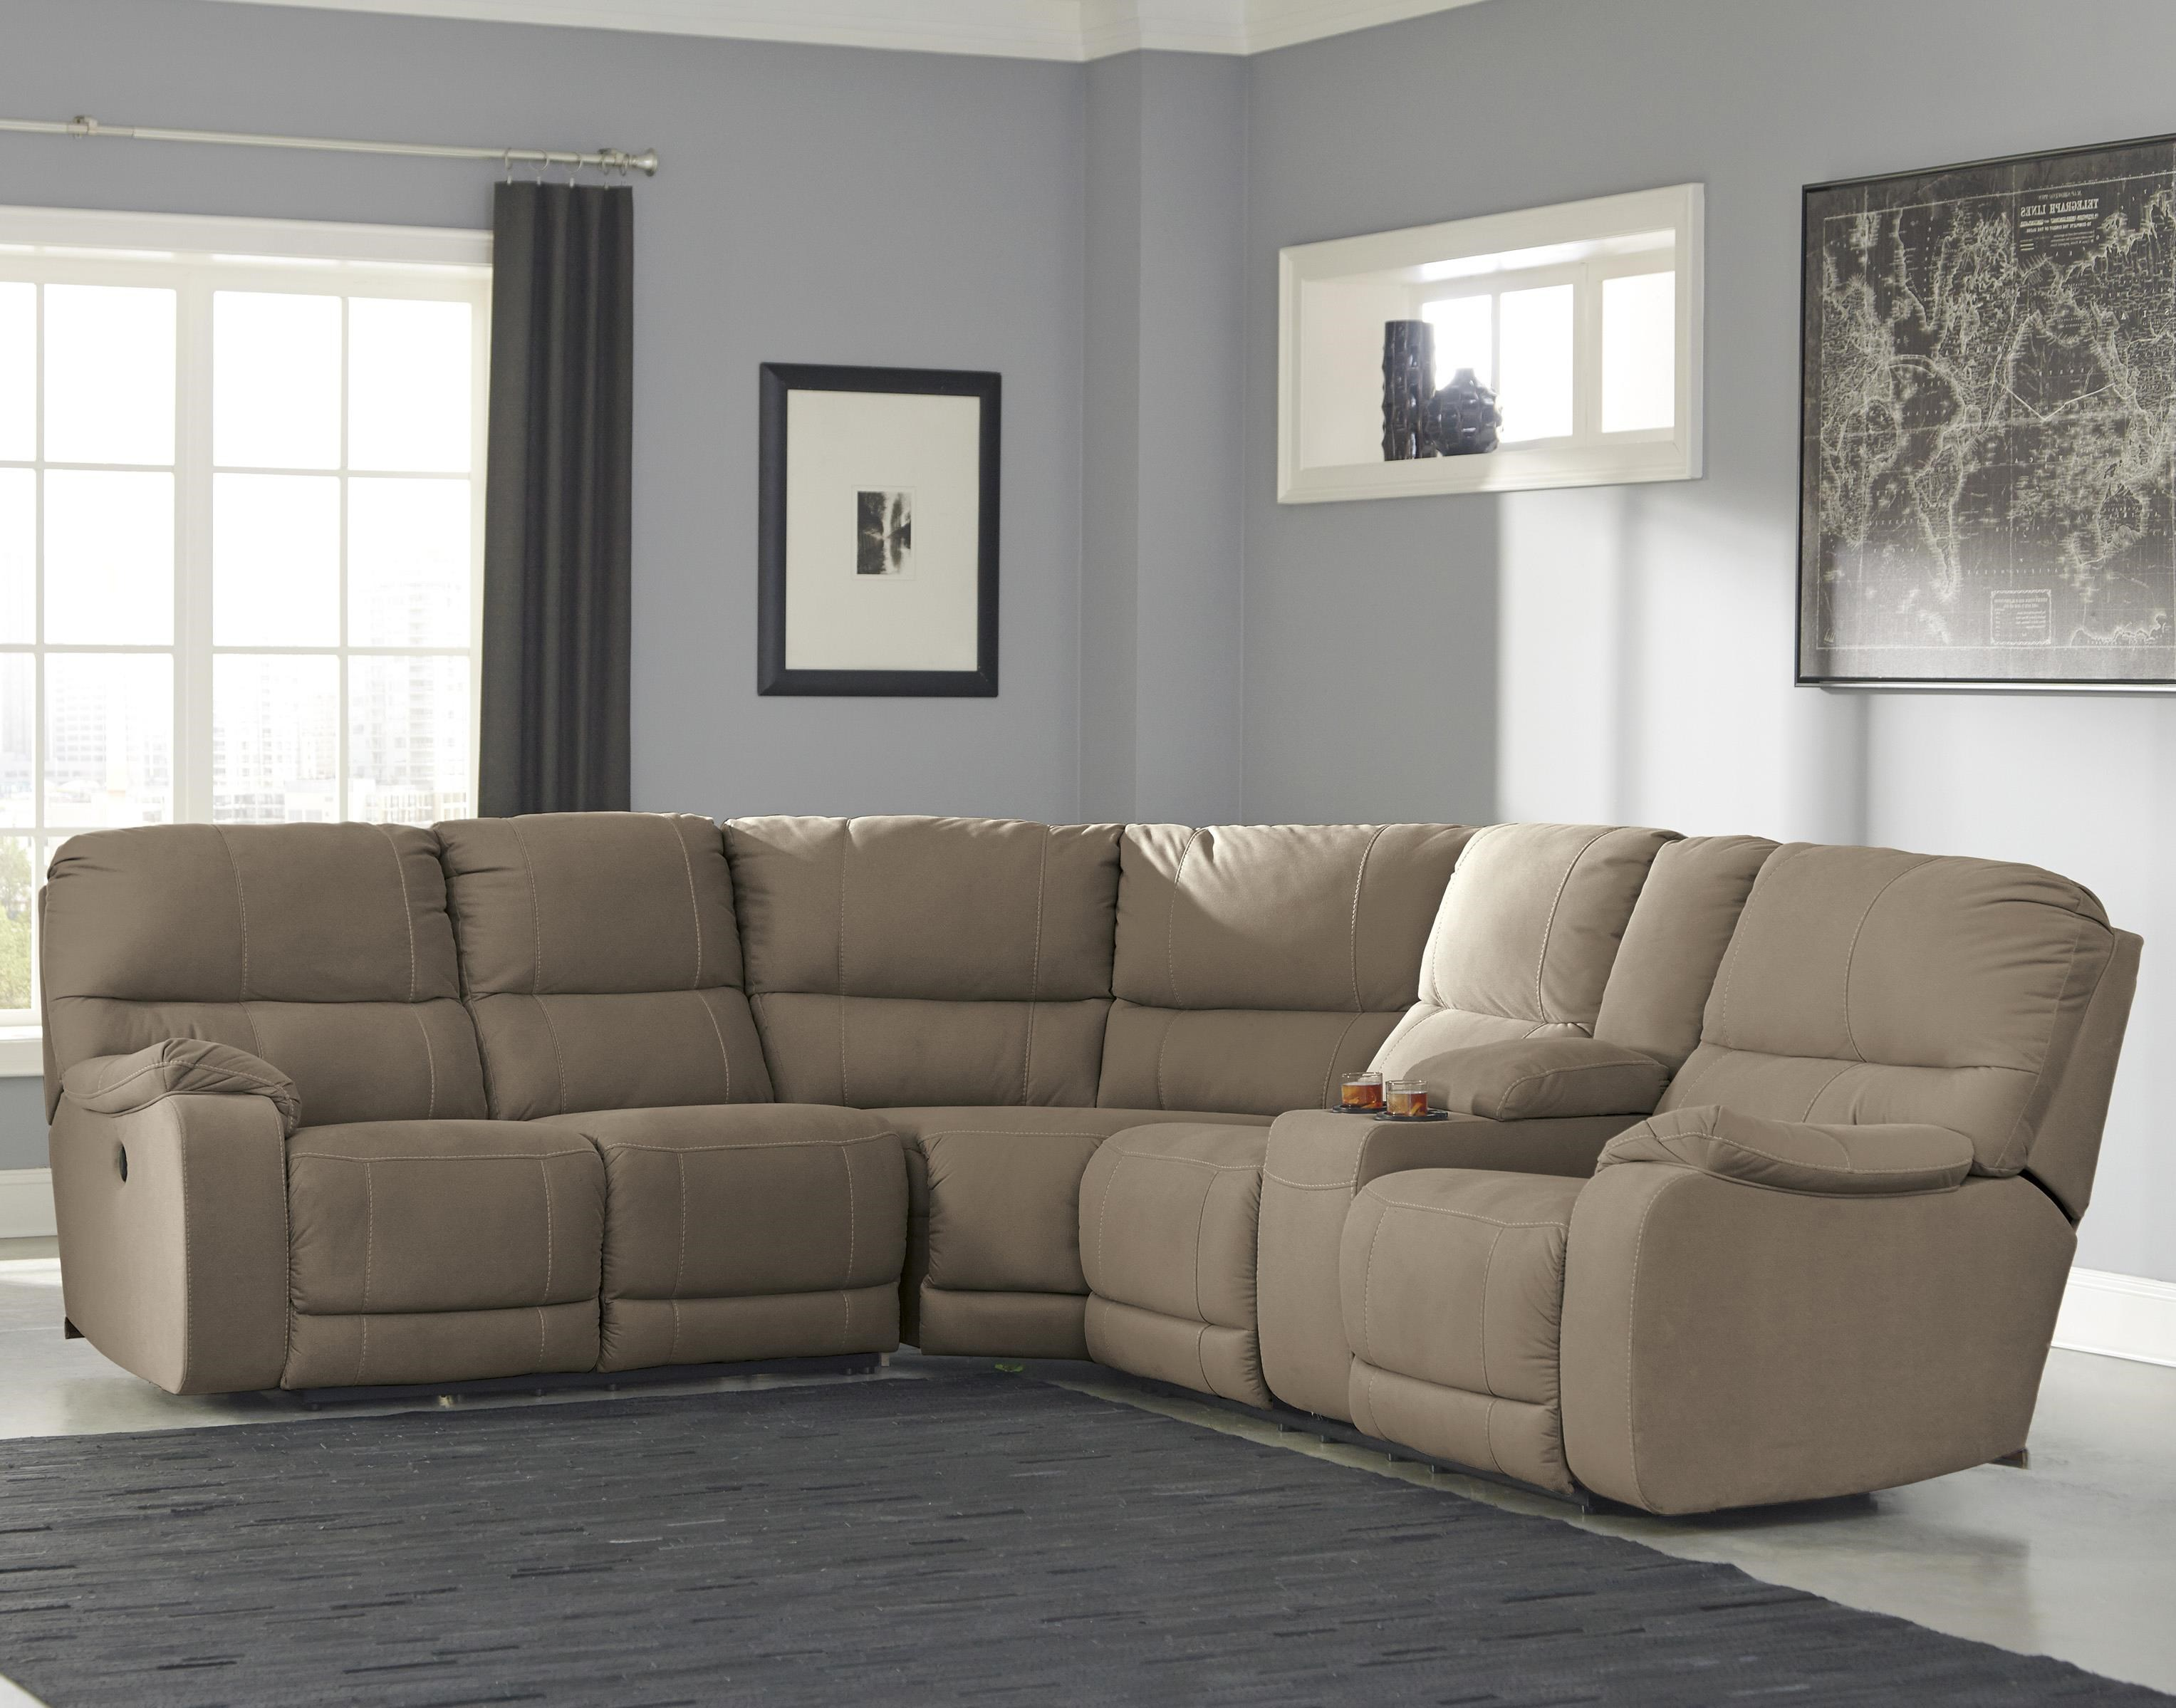 Benchcraft by Ashley Bohannon Power Reclining Sectional with Console - Royal Furniture - Reclining Sectional Sofa & Benchcraft by Ashley Bohannon Power Reclining Sectional with ... islam-shia.org